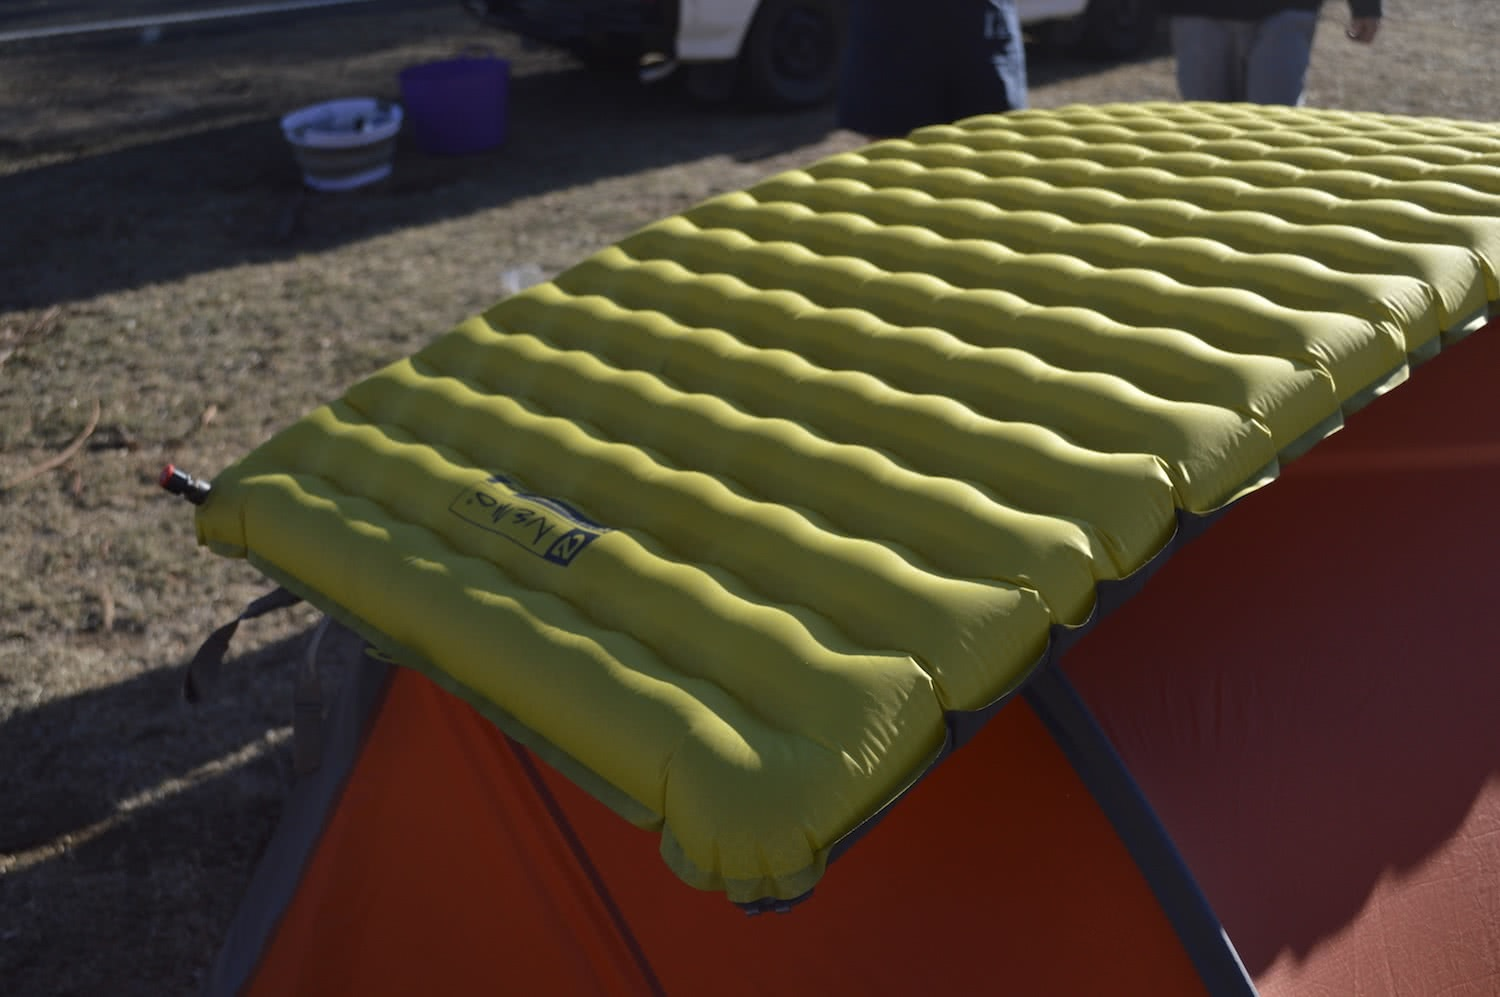 tim ashelford, nemo tensor 25r insulated review, sleeping, air pad, gear,